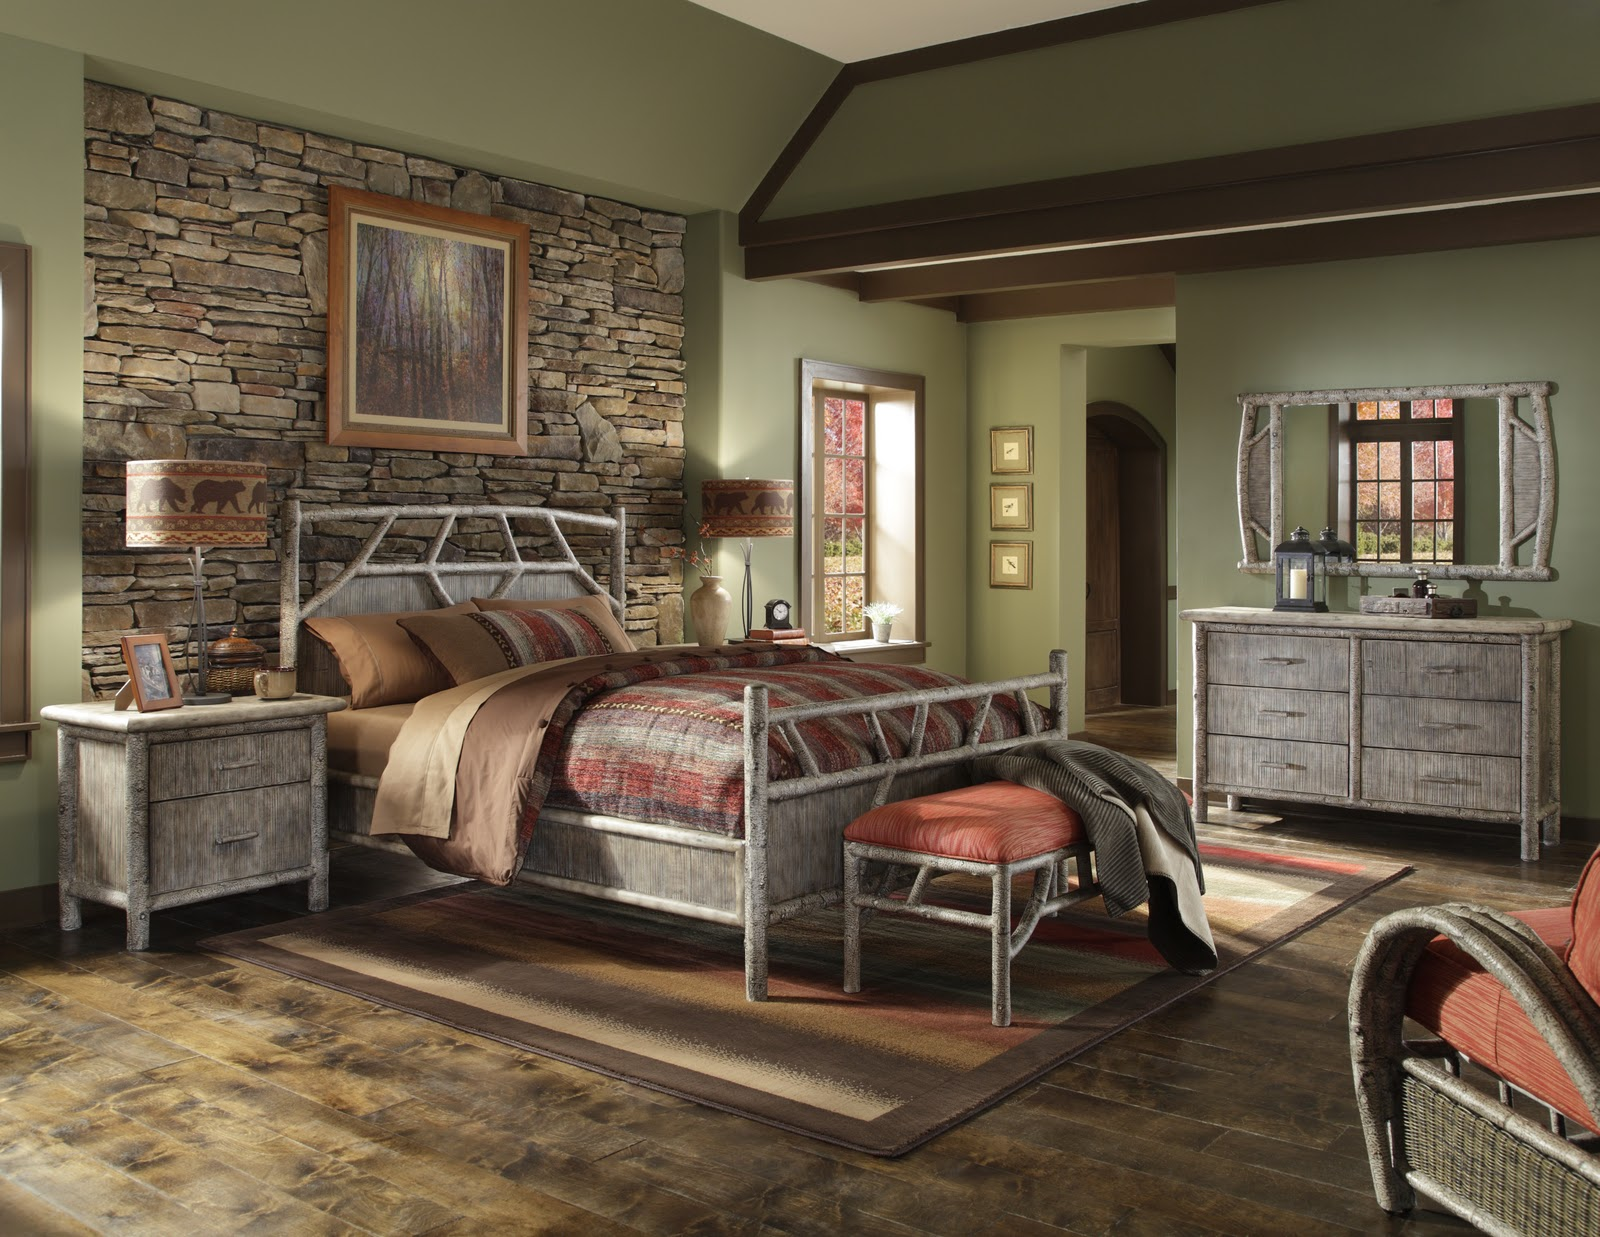 Lodge Style Bedroom Furniture: Gift & Home Today: 5 New Bedding Ensembles